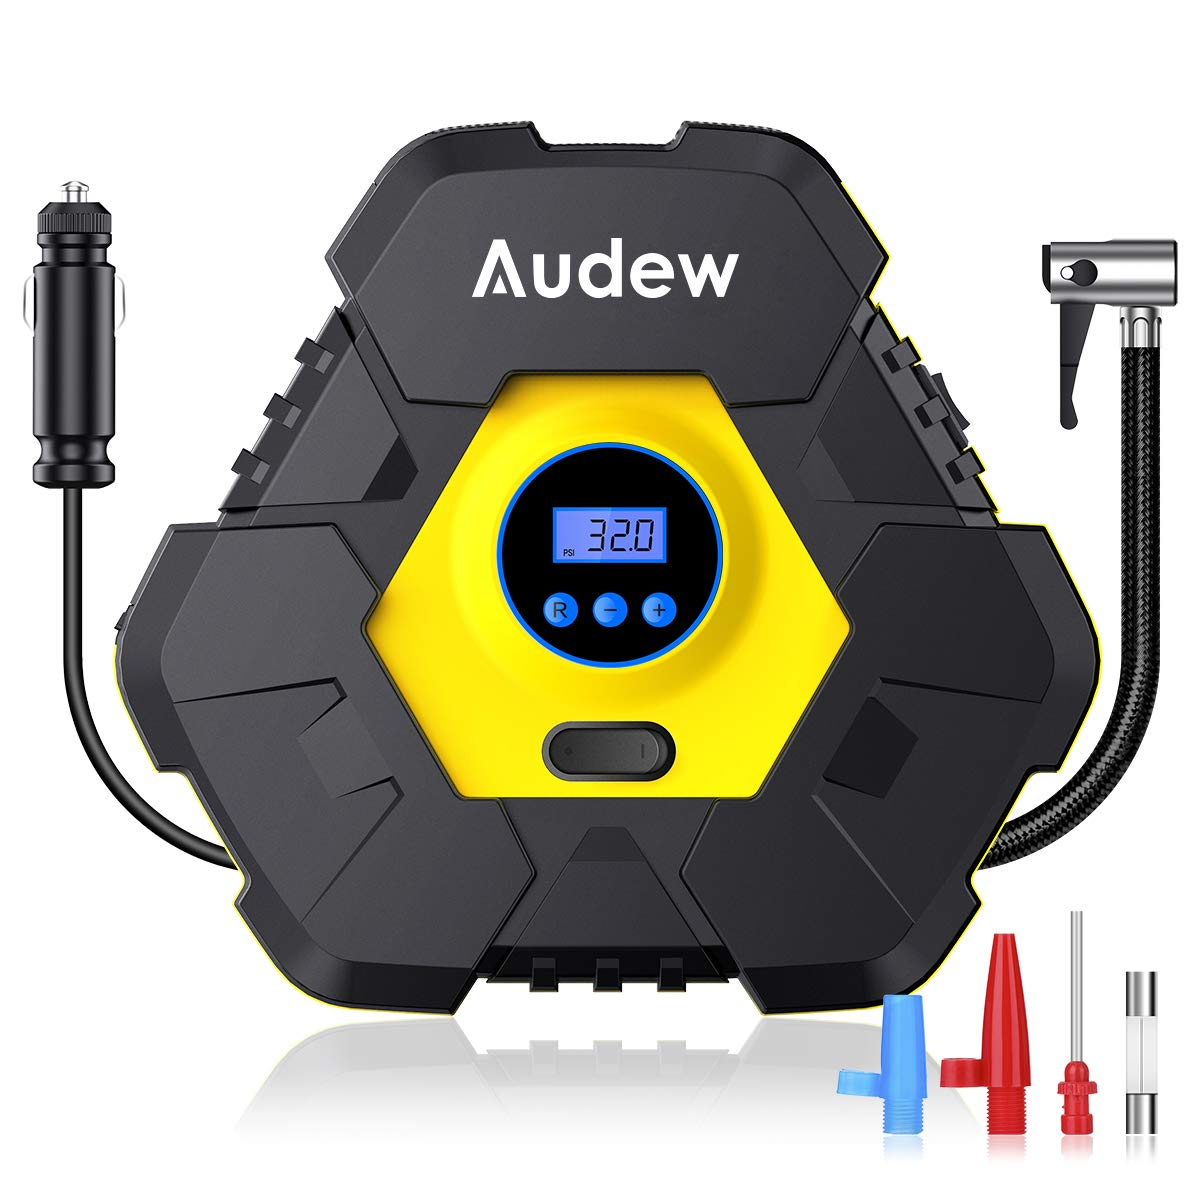 Audew Upgraded Portable Air Compressor